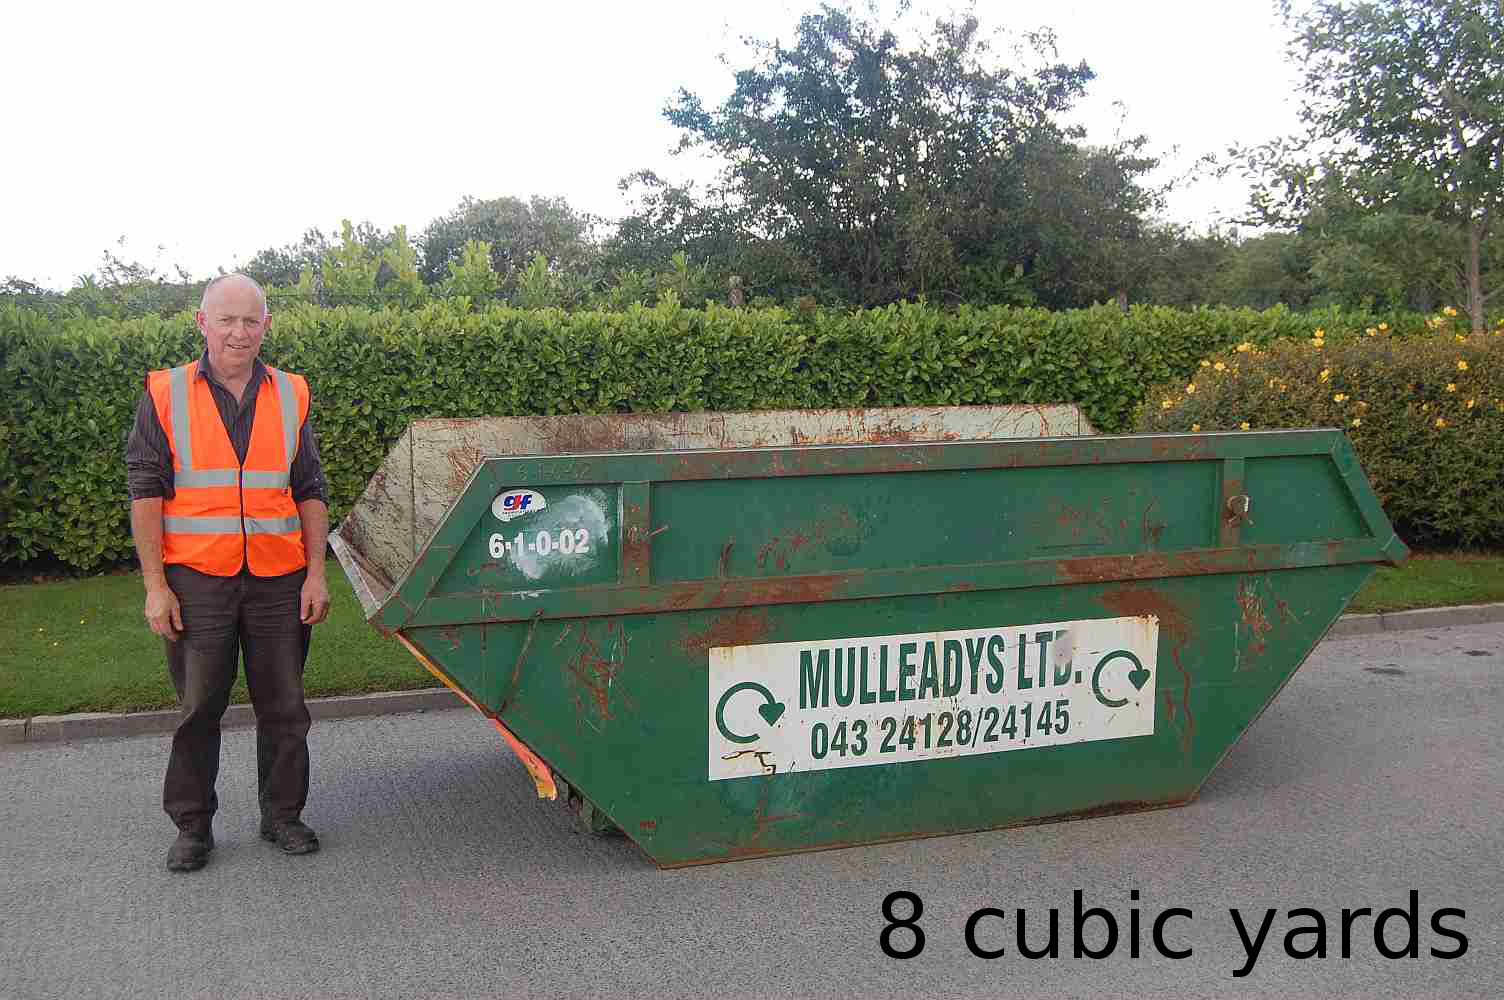 Holds approx. 85 refuse sacks. For small shops, pubs restaurants and home/commercial construction works etc. (Ideal Builders Skip)